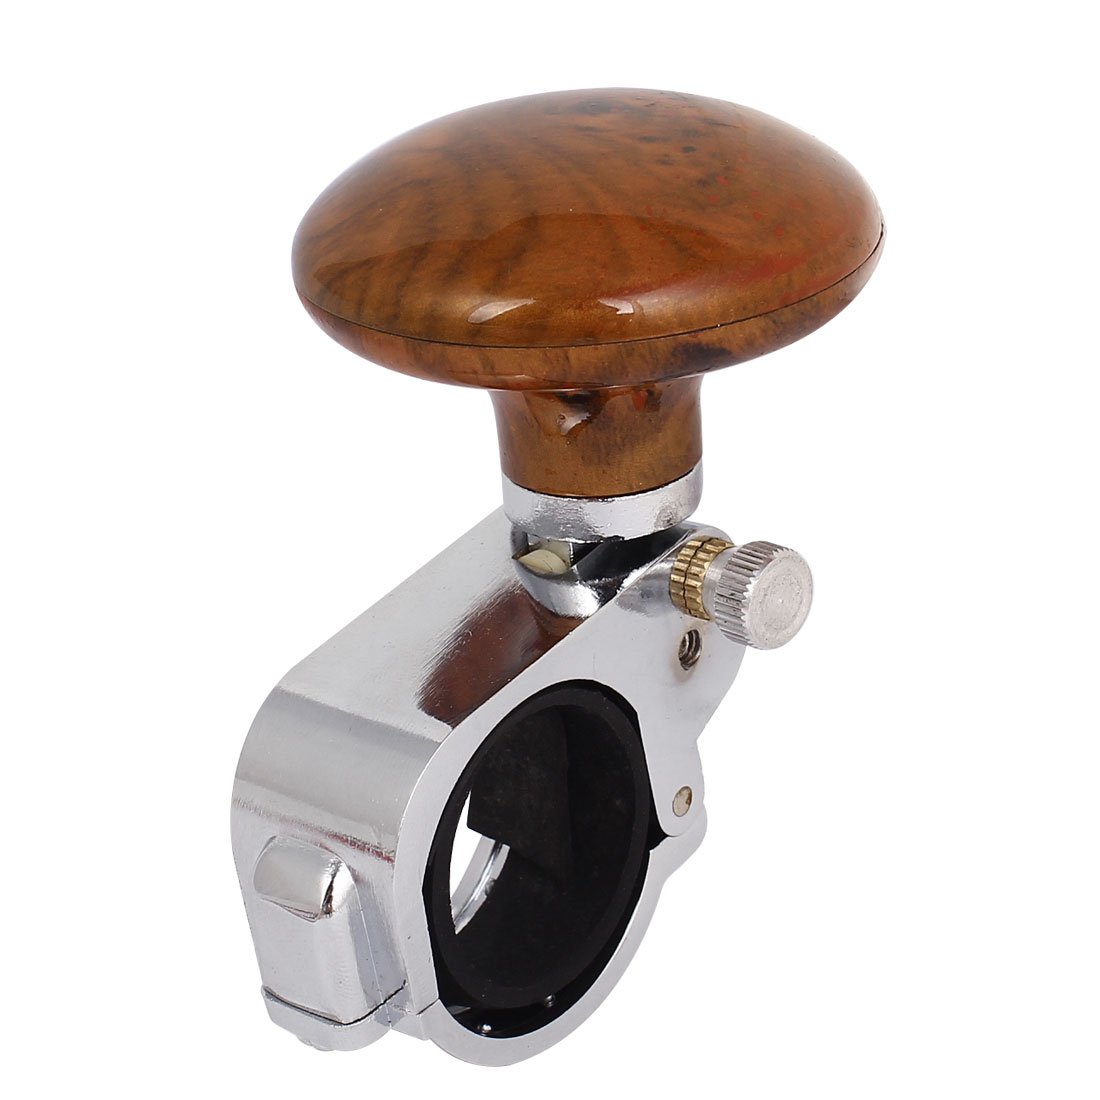 "Auto Assist Round Power Handle Steering Wheel Knob 2.2"" Dia Silver Tone Brown"